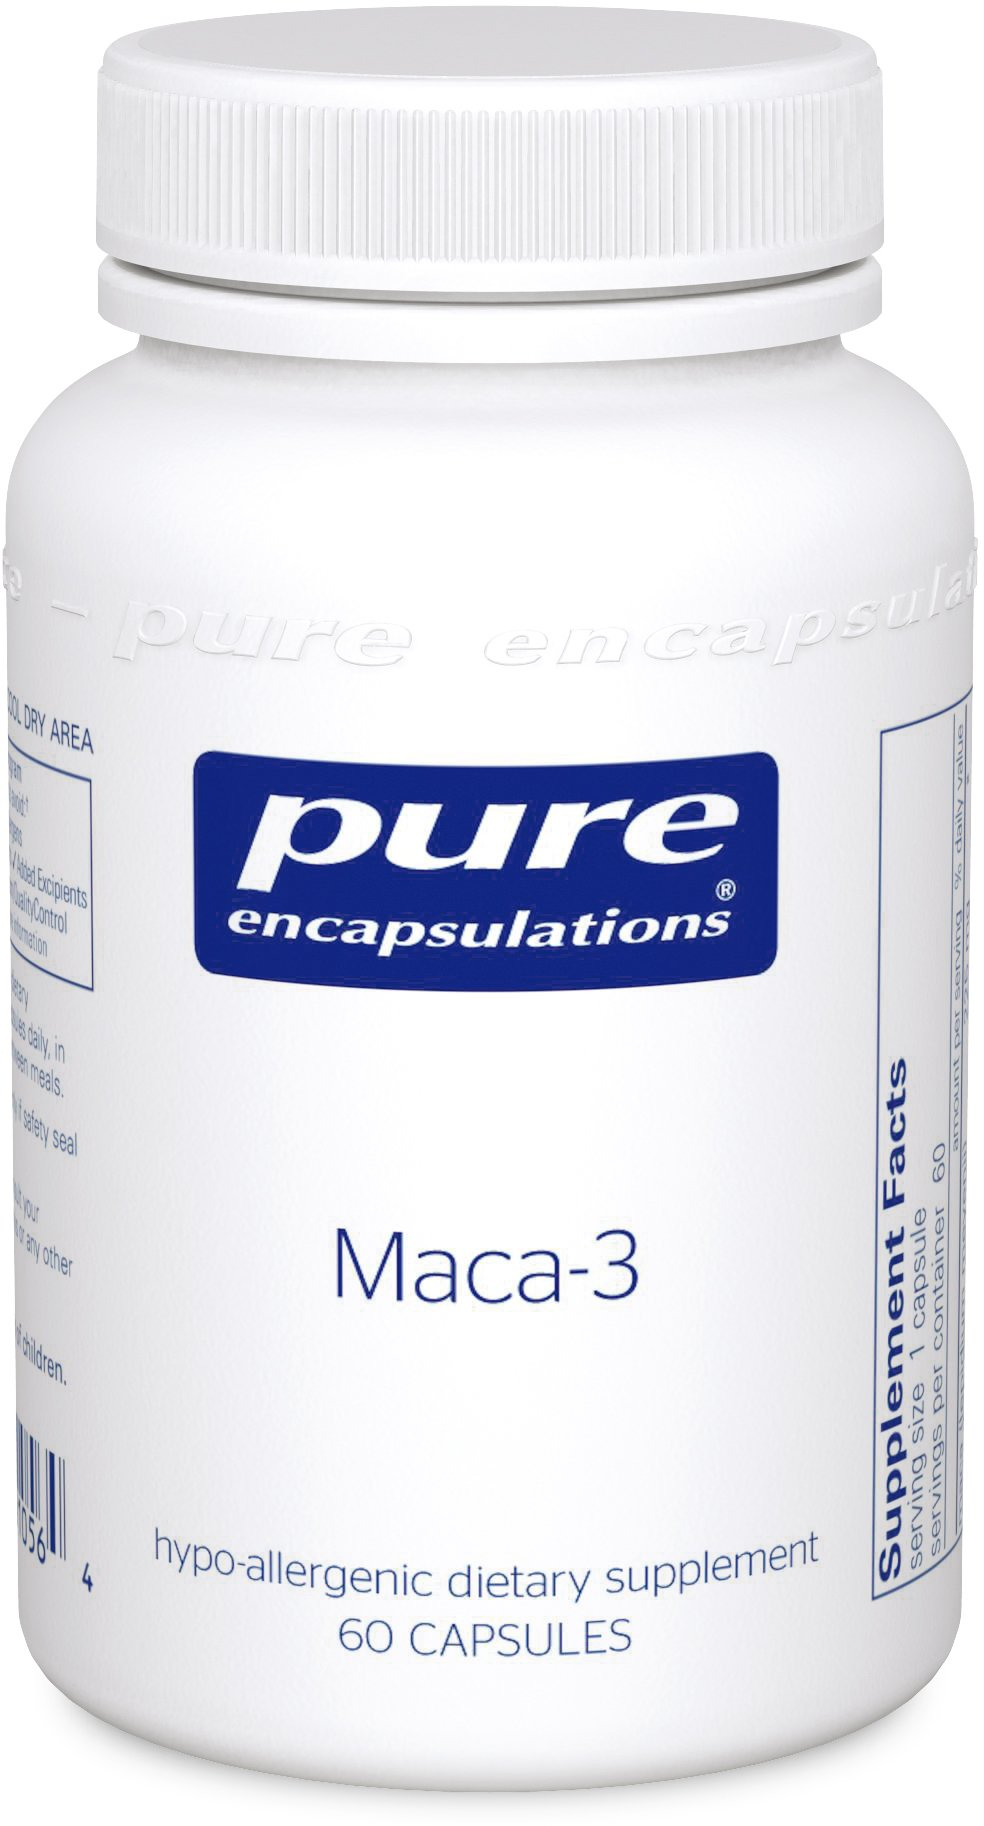 Pure Encapsulations - Maca-3 - Hypoallergenic Supplement Promotes Healthy Libido and Reproductive System Function* - 60 Capsules